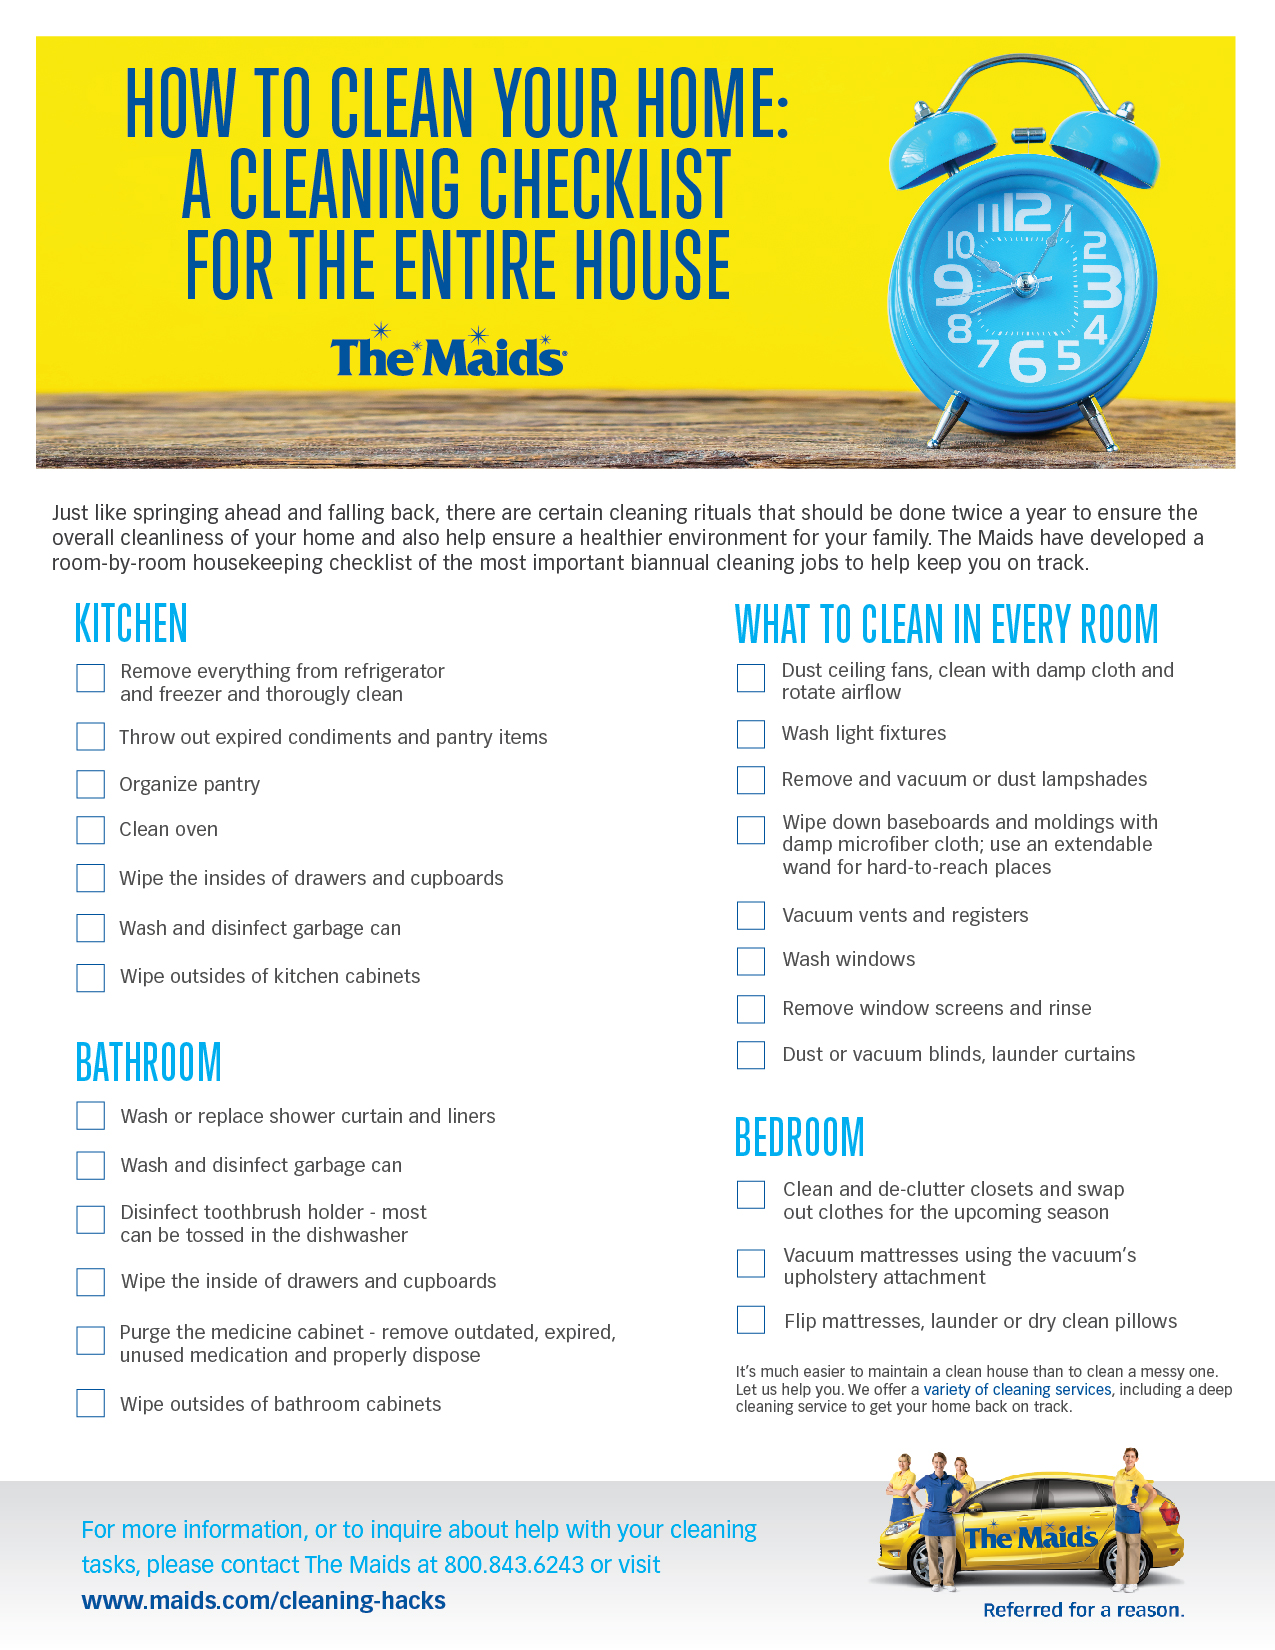 How to Clean Your Entire House A RoomByRoom Cleaning Checklist from The Maids